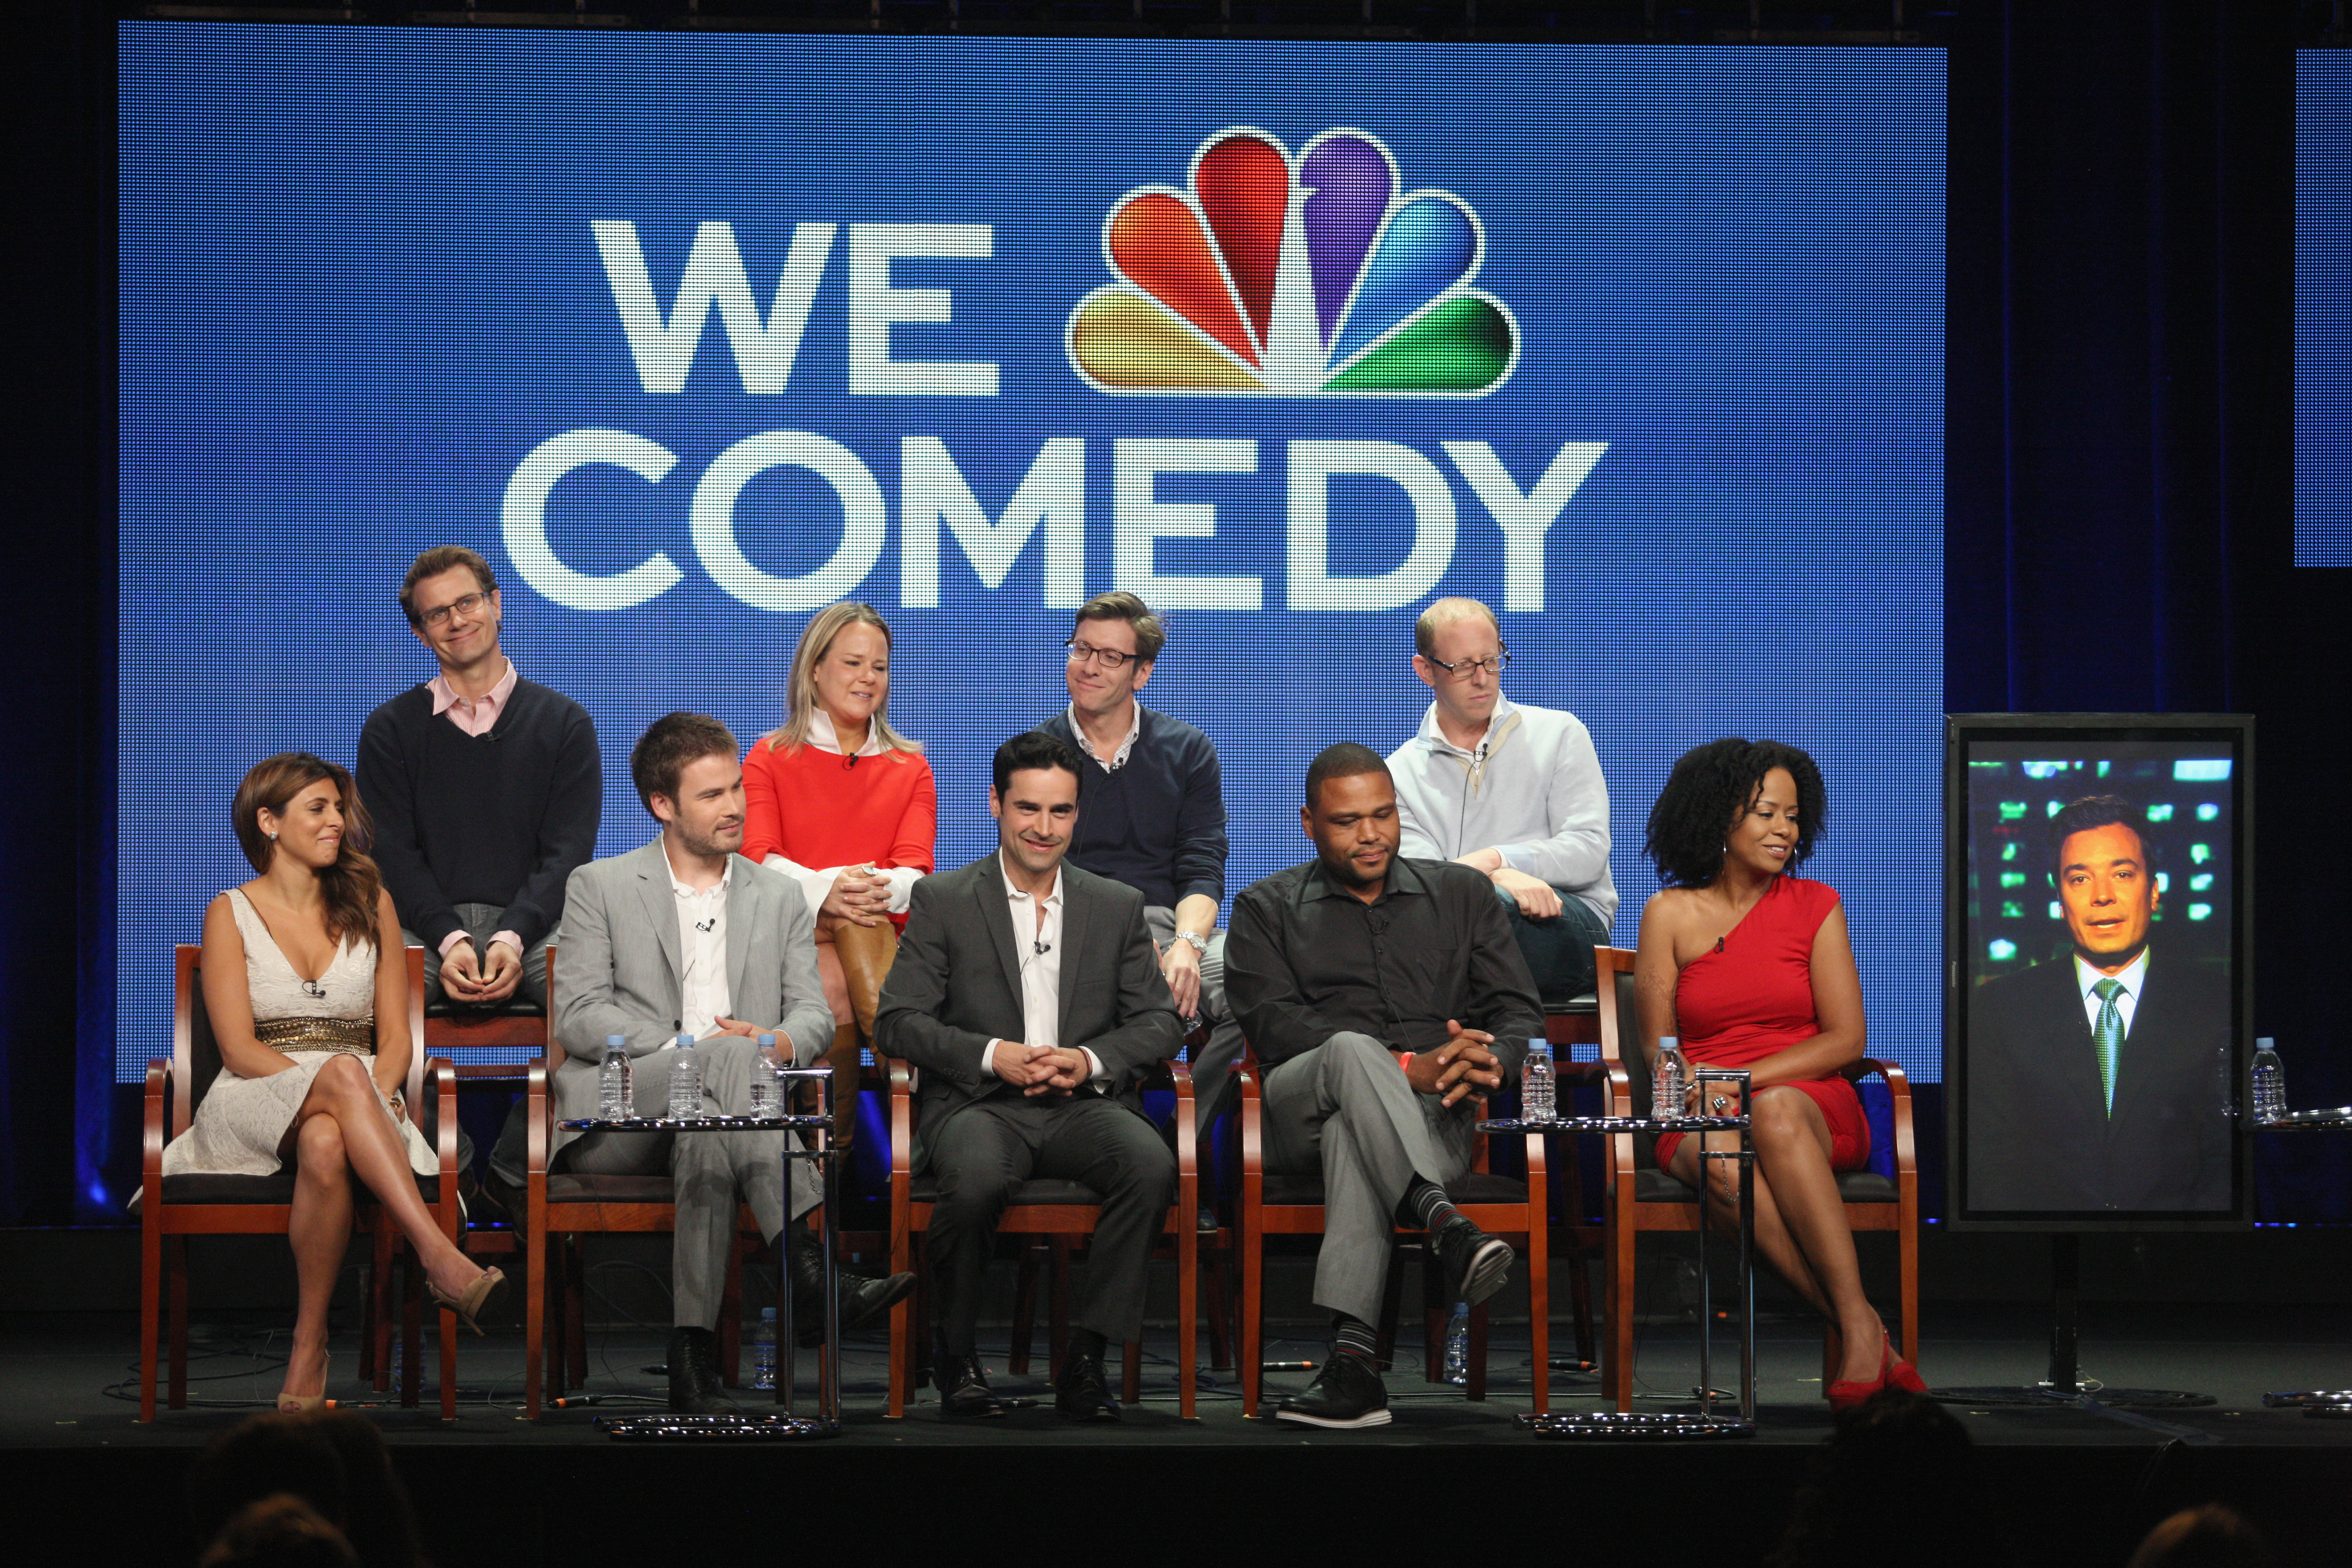 The cast and crew of Guys With Kids spoke to the press at the show's TCA panel.